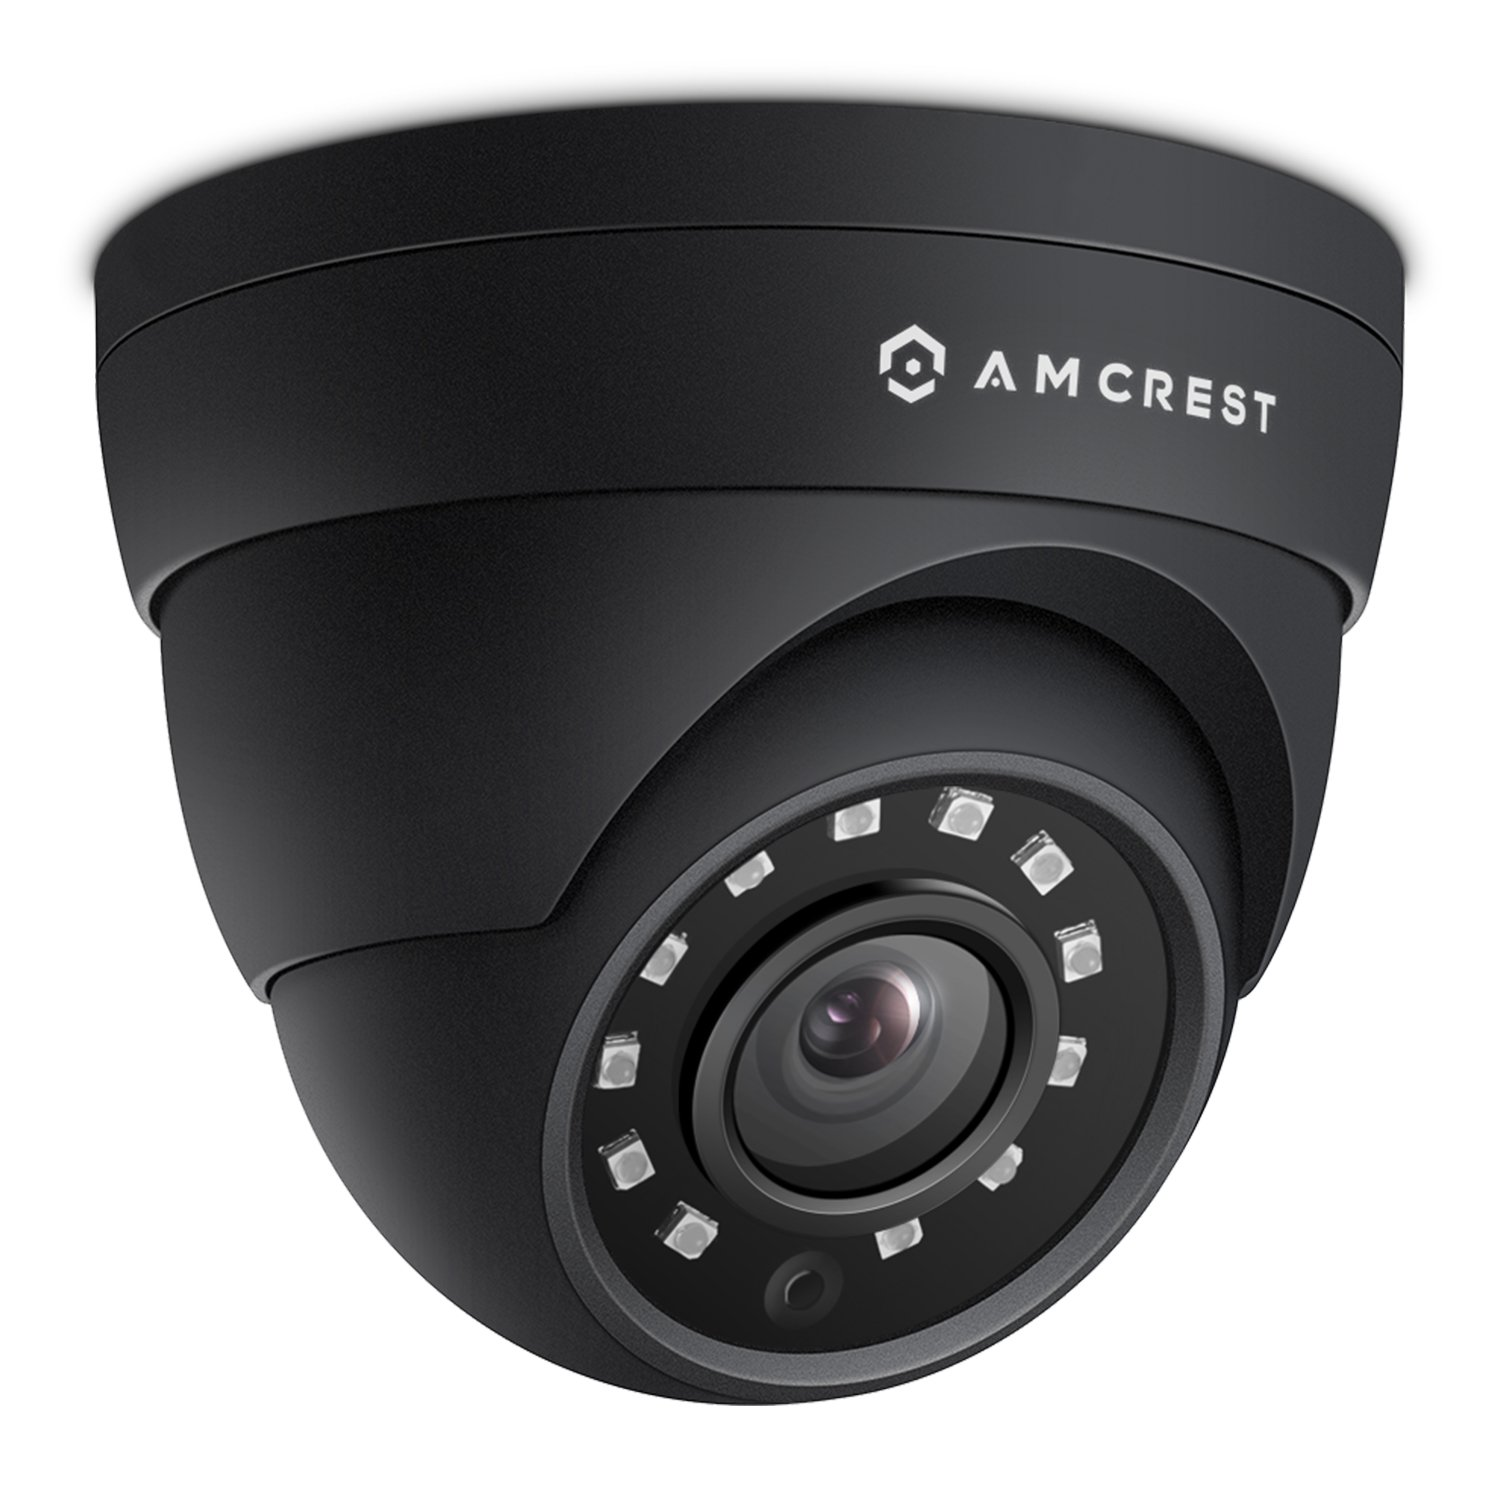 Amcrest 4MP IP Camera POE Security UltraHD Outdoor IP Cam Dome - IP67 Weatherproof, 98ft Night Vision, 4-Megapixel (2688 TVL), IP4M-1055E (Black)